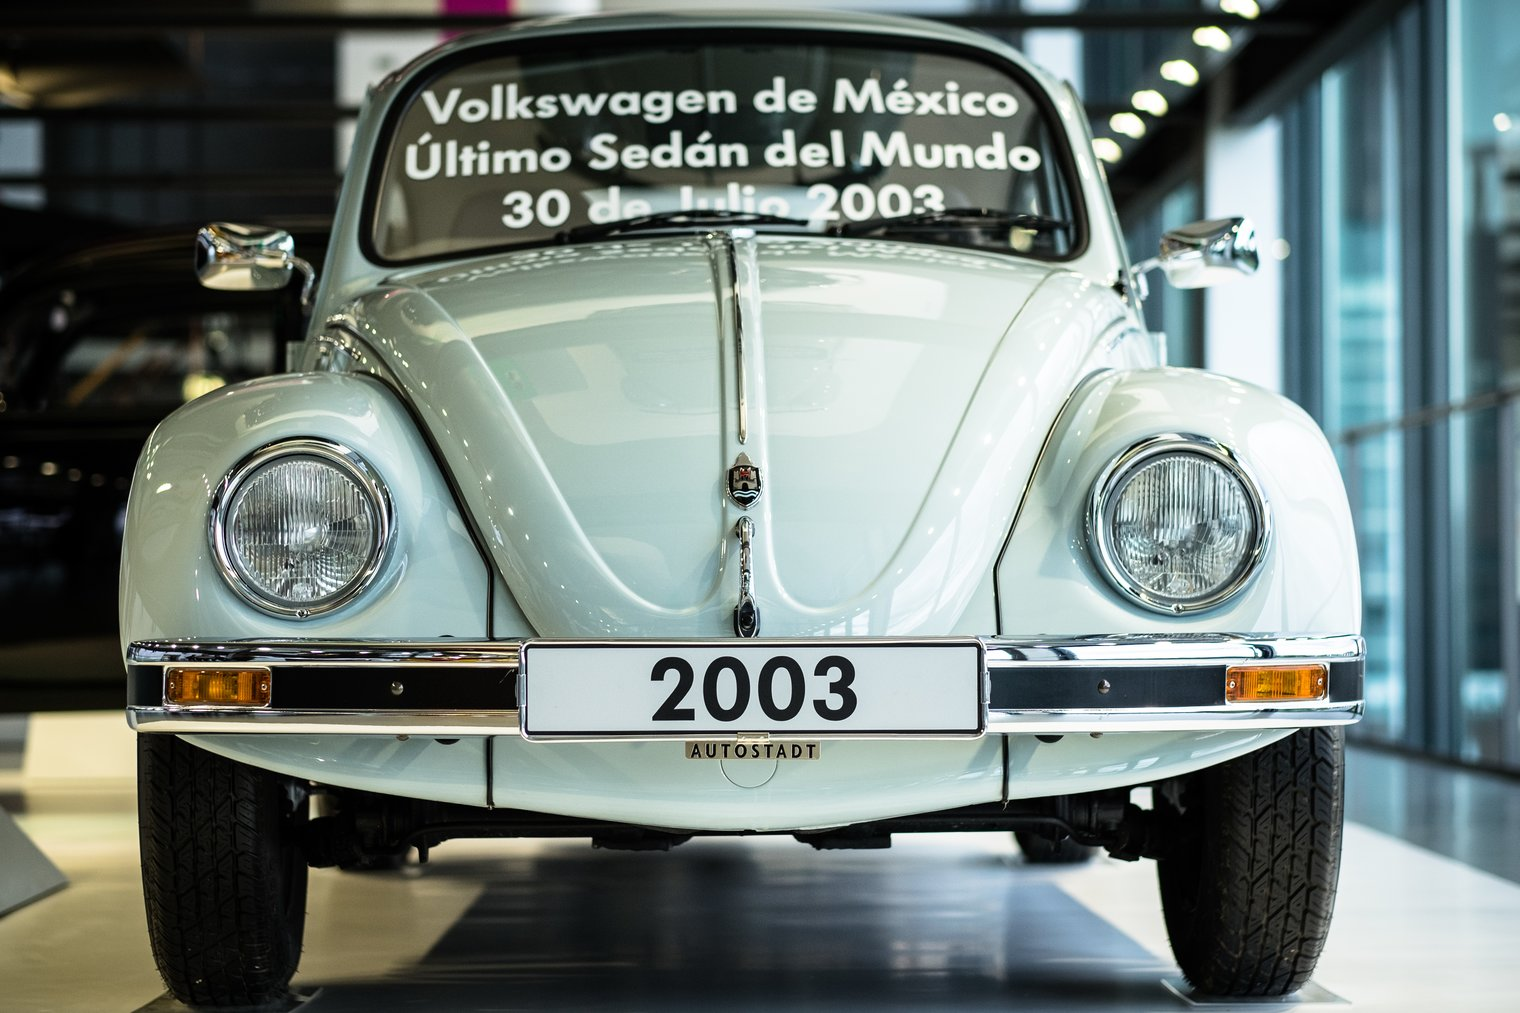 Last VW Beetle from Puebla Mexico 2003